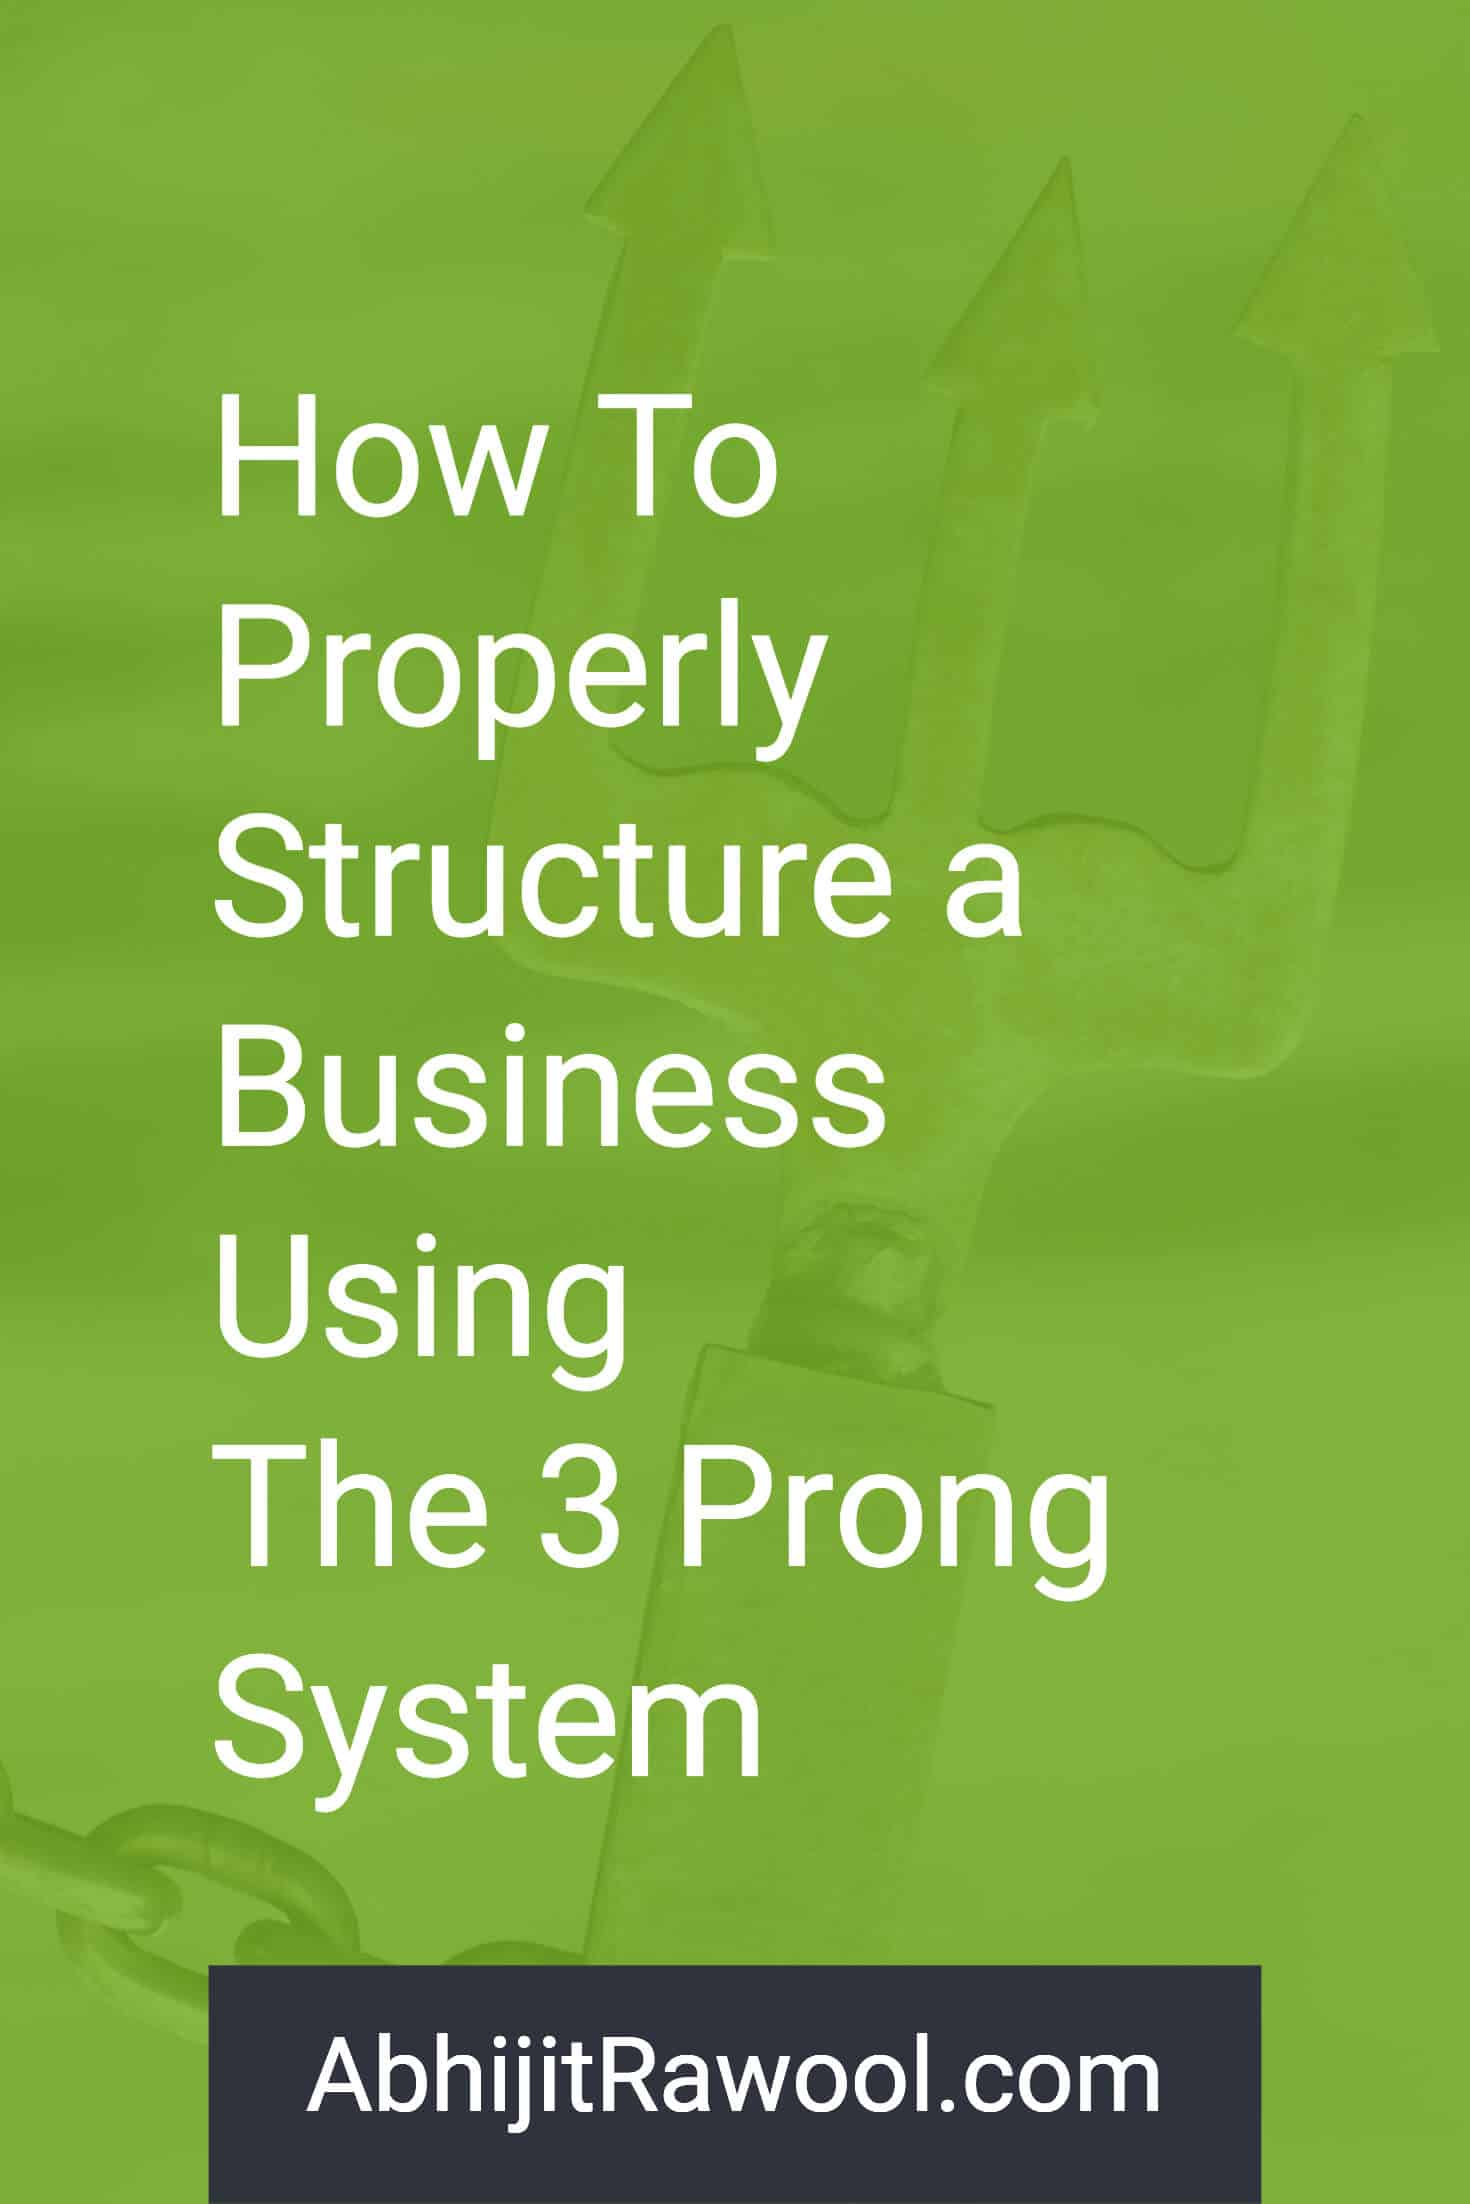 Structure a Business